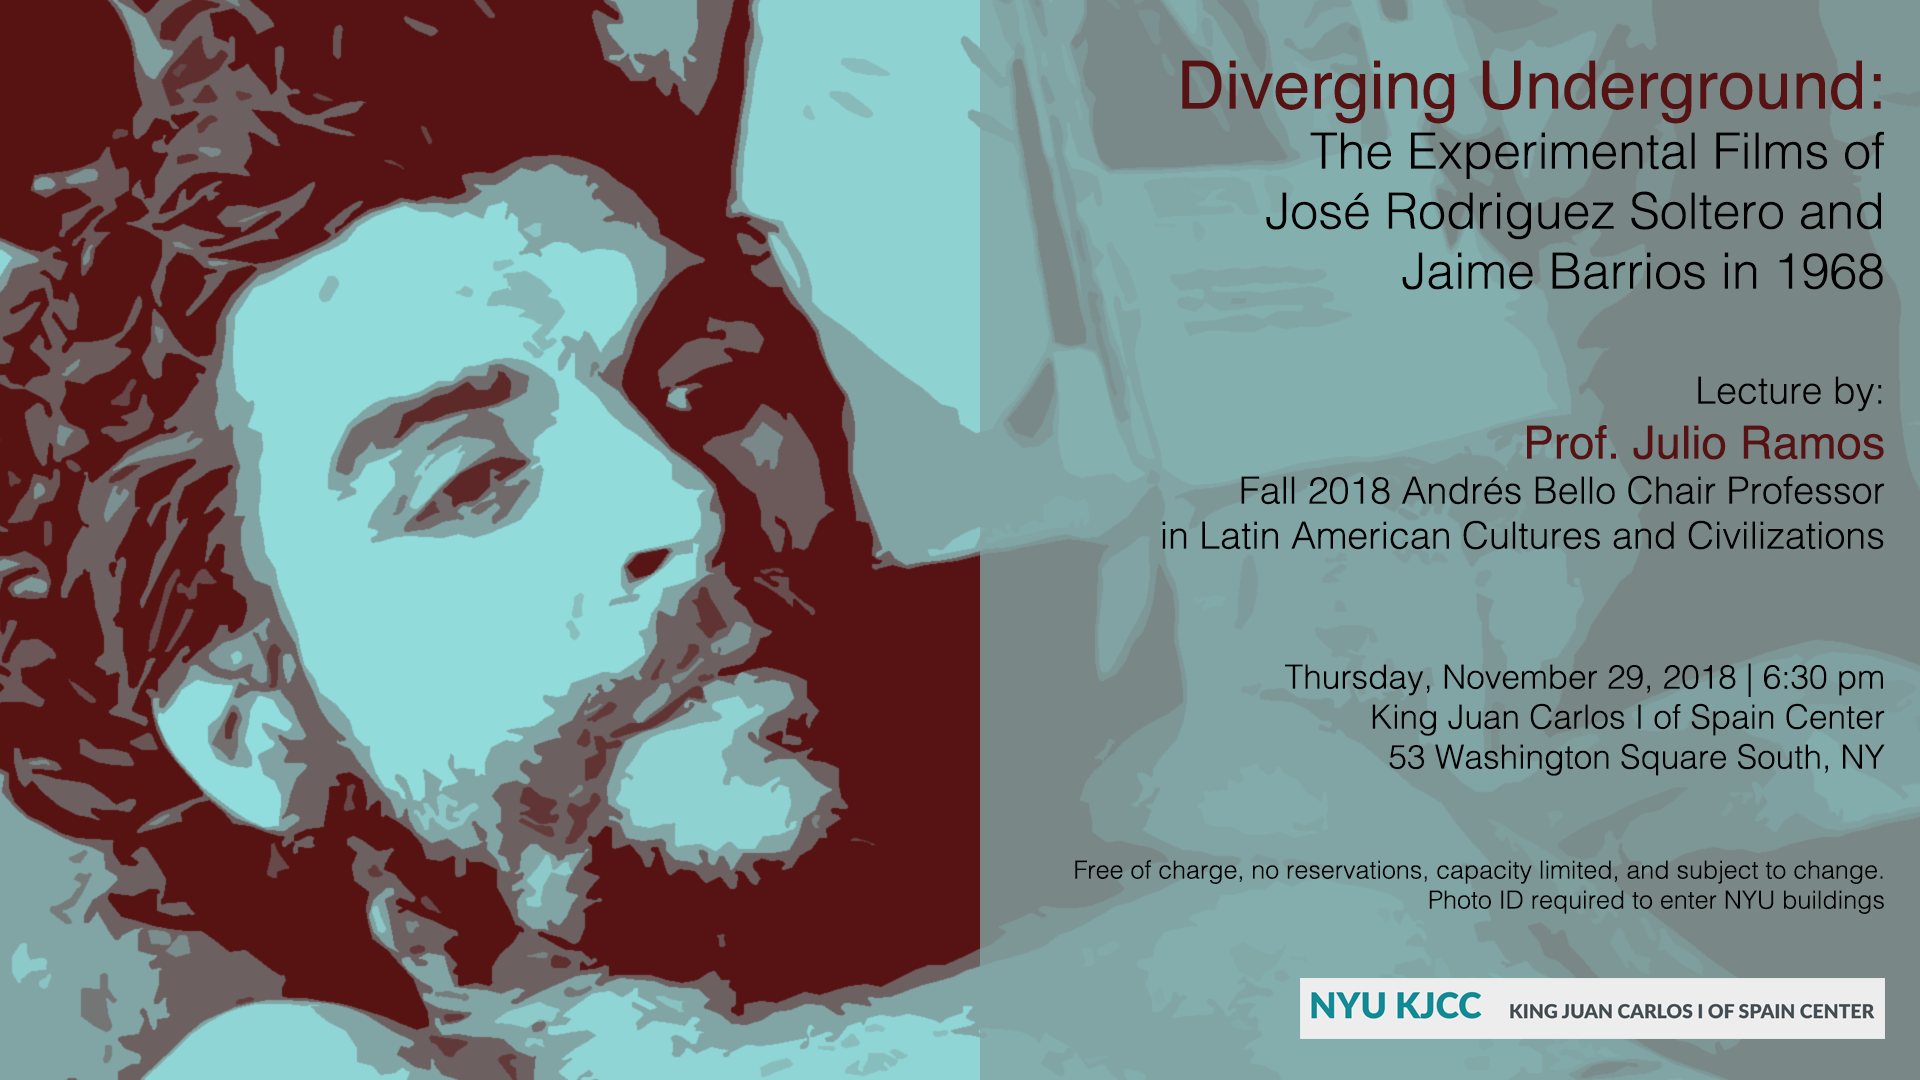 Image from Lecture |  Andrés Bello Chair Julio Ramos Second Public Lecture: Diverging Underground: The Experimental Films of José Rodríguez Soltero and Jaime Barrios in 1968